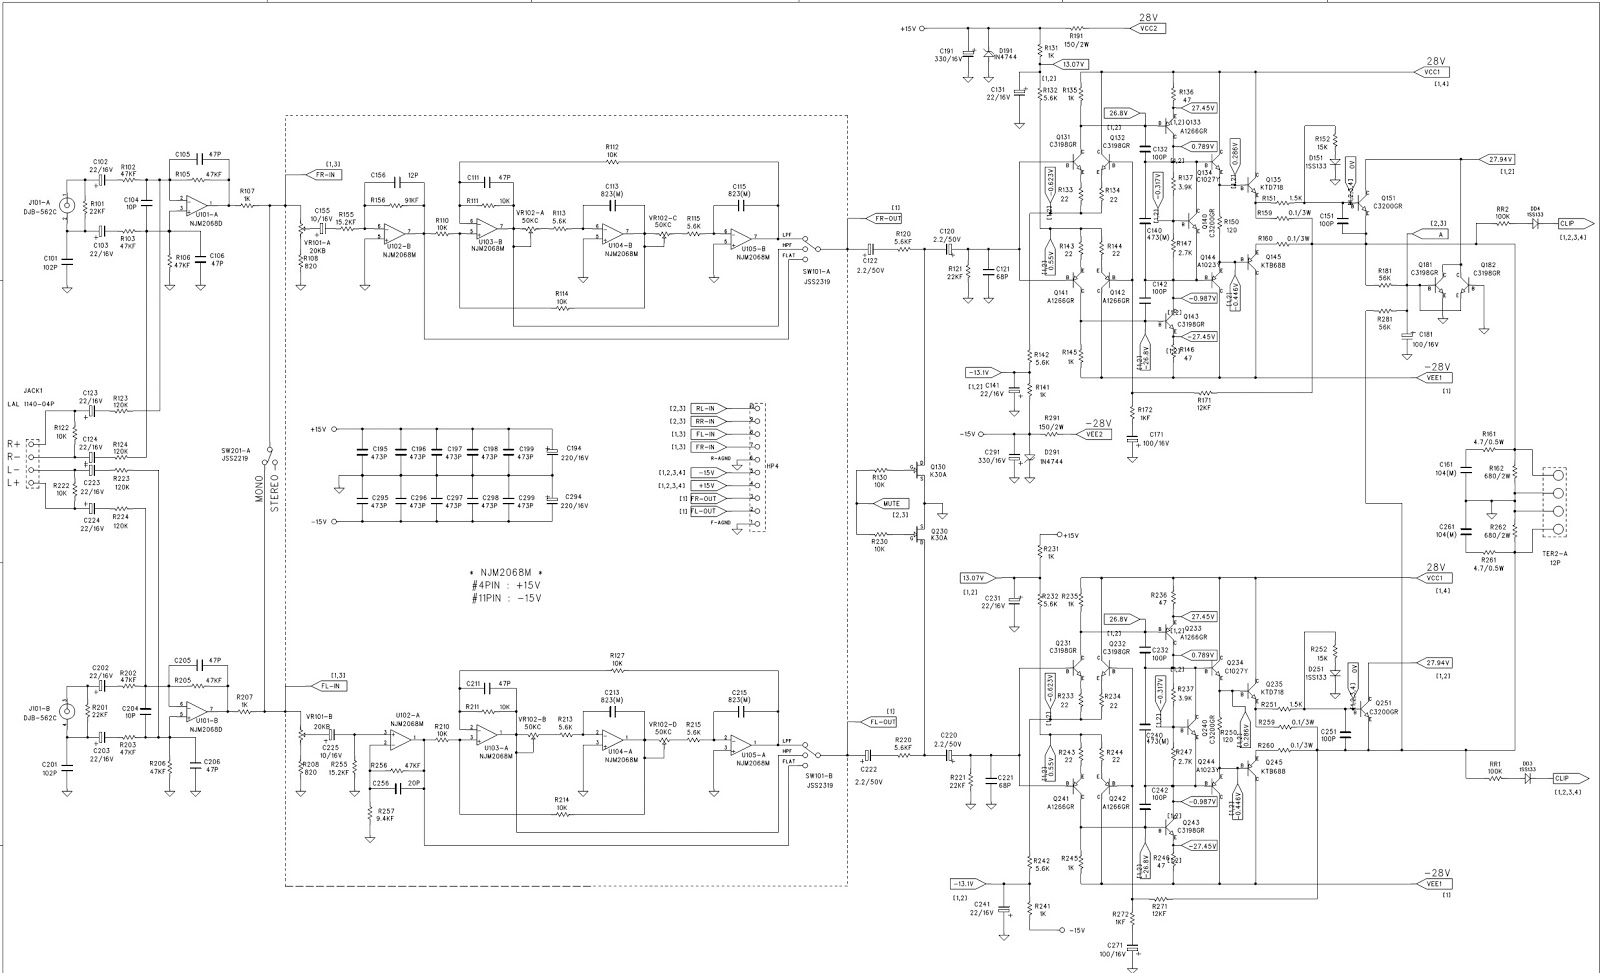 Infinity 5760a wiring diagram – circuit diagram  6 CHANNEL POWER AMPLIFIER   Electro help